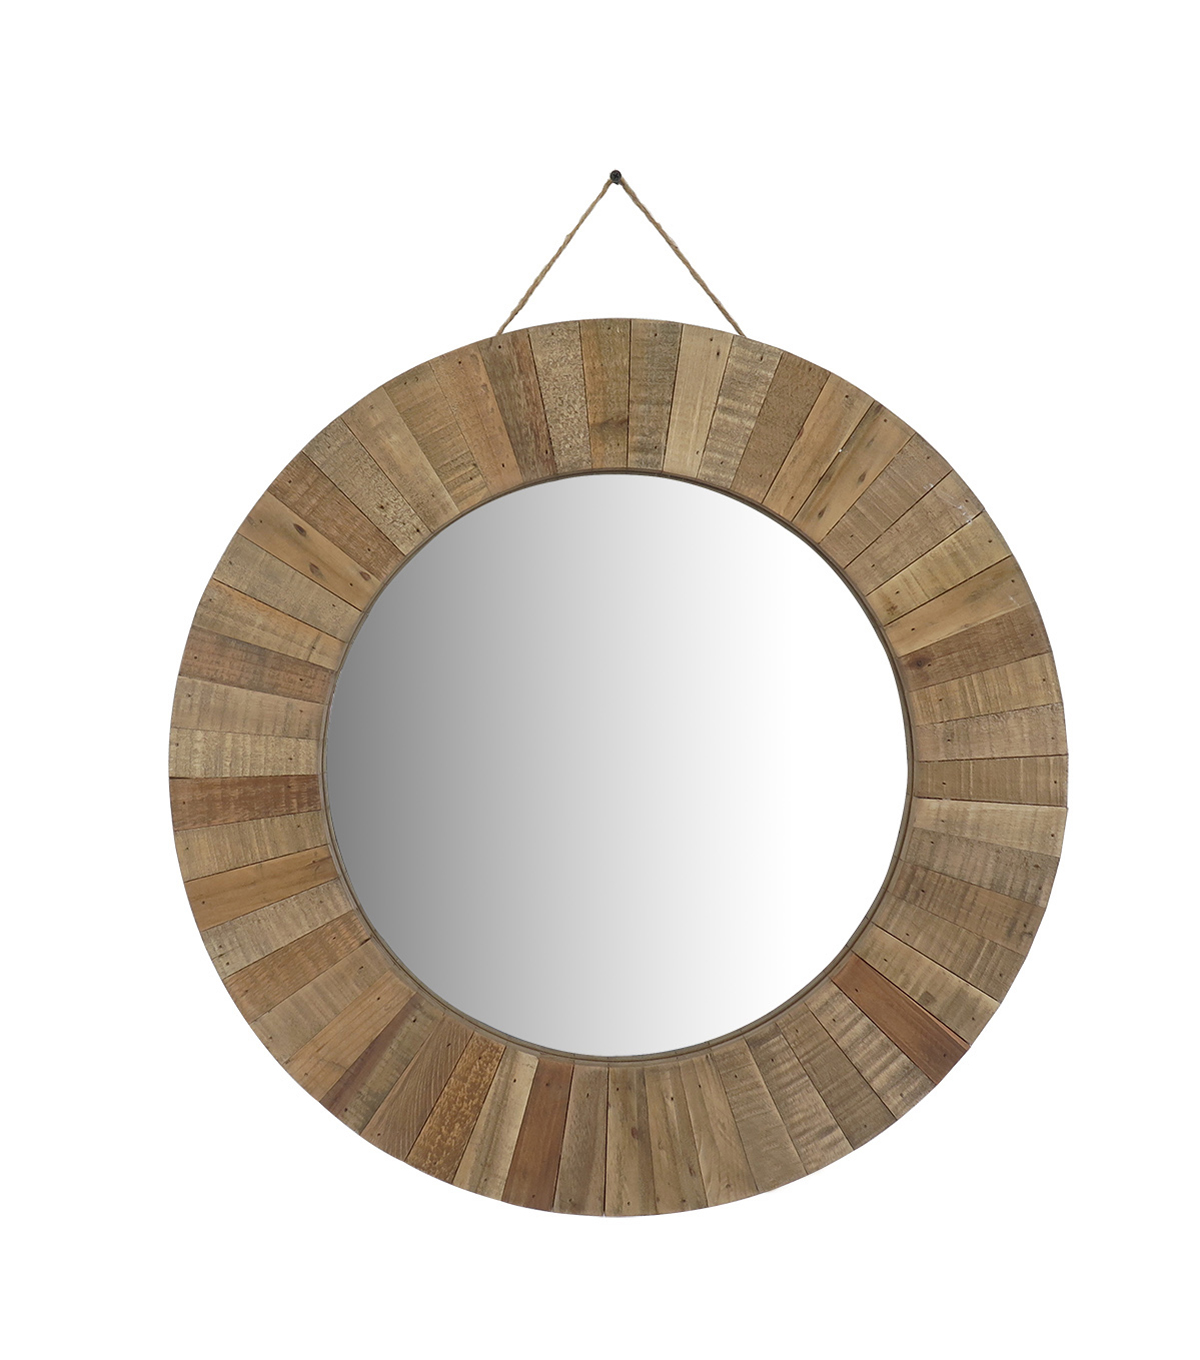 Exceptional Large Round Wood Mirror Part - 9: Summer Sol Large Round Wood Frame Mirror